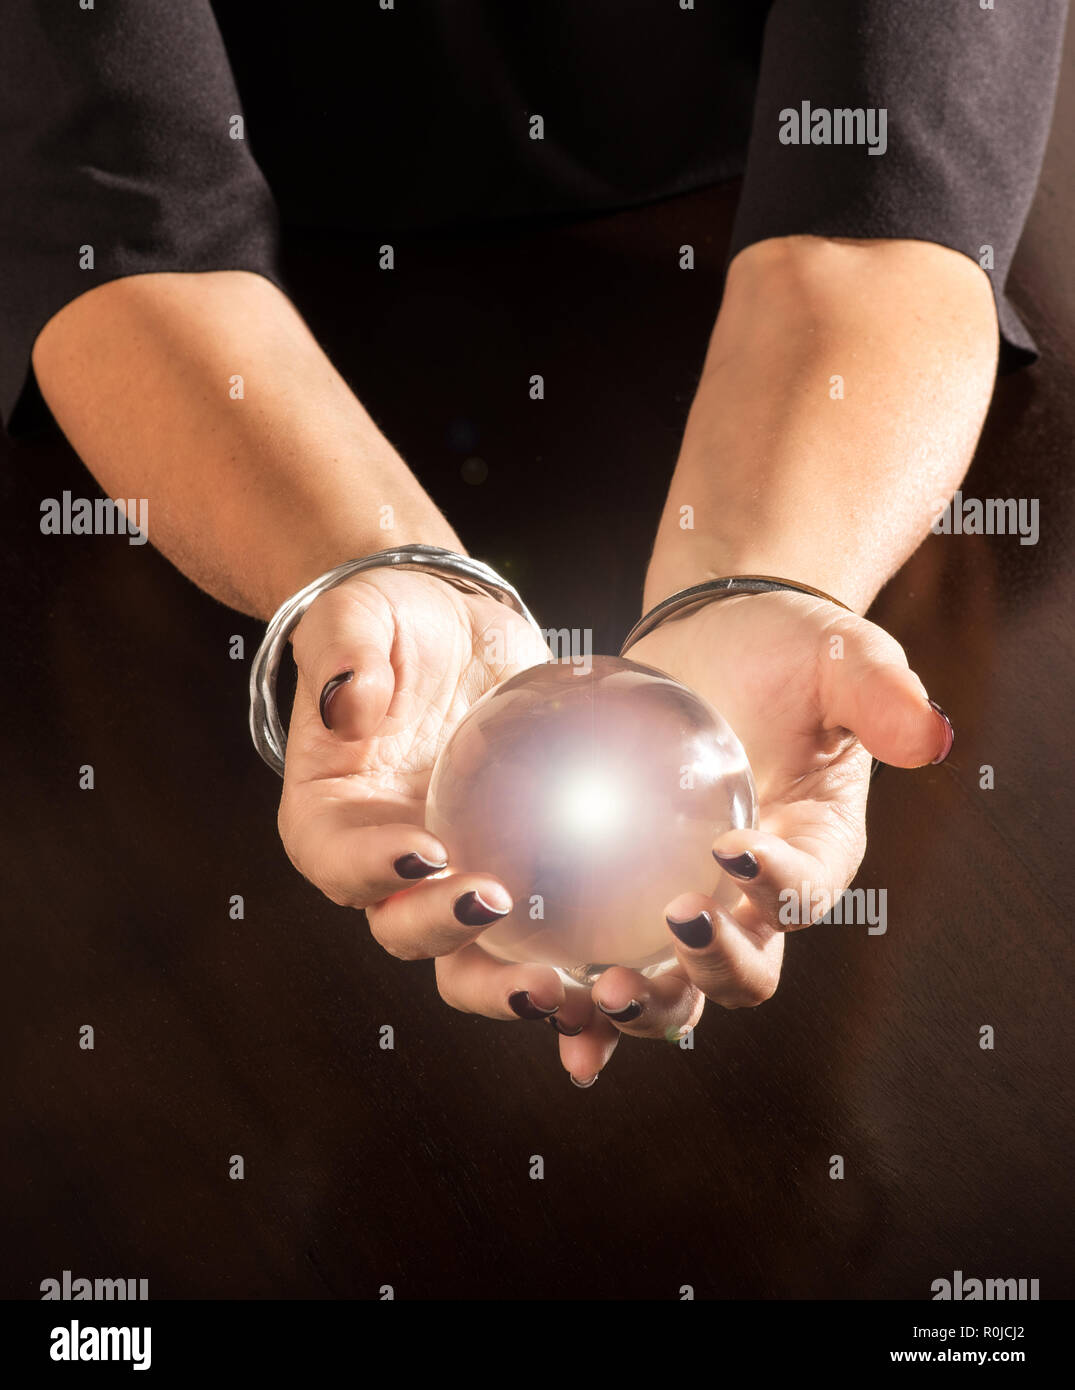 Fortune teller holding a magical glowing crystal ball cradled in her hands over a dark table with copy space below - Stock Image